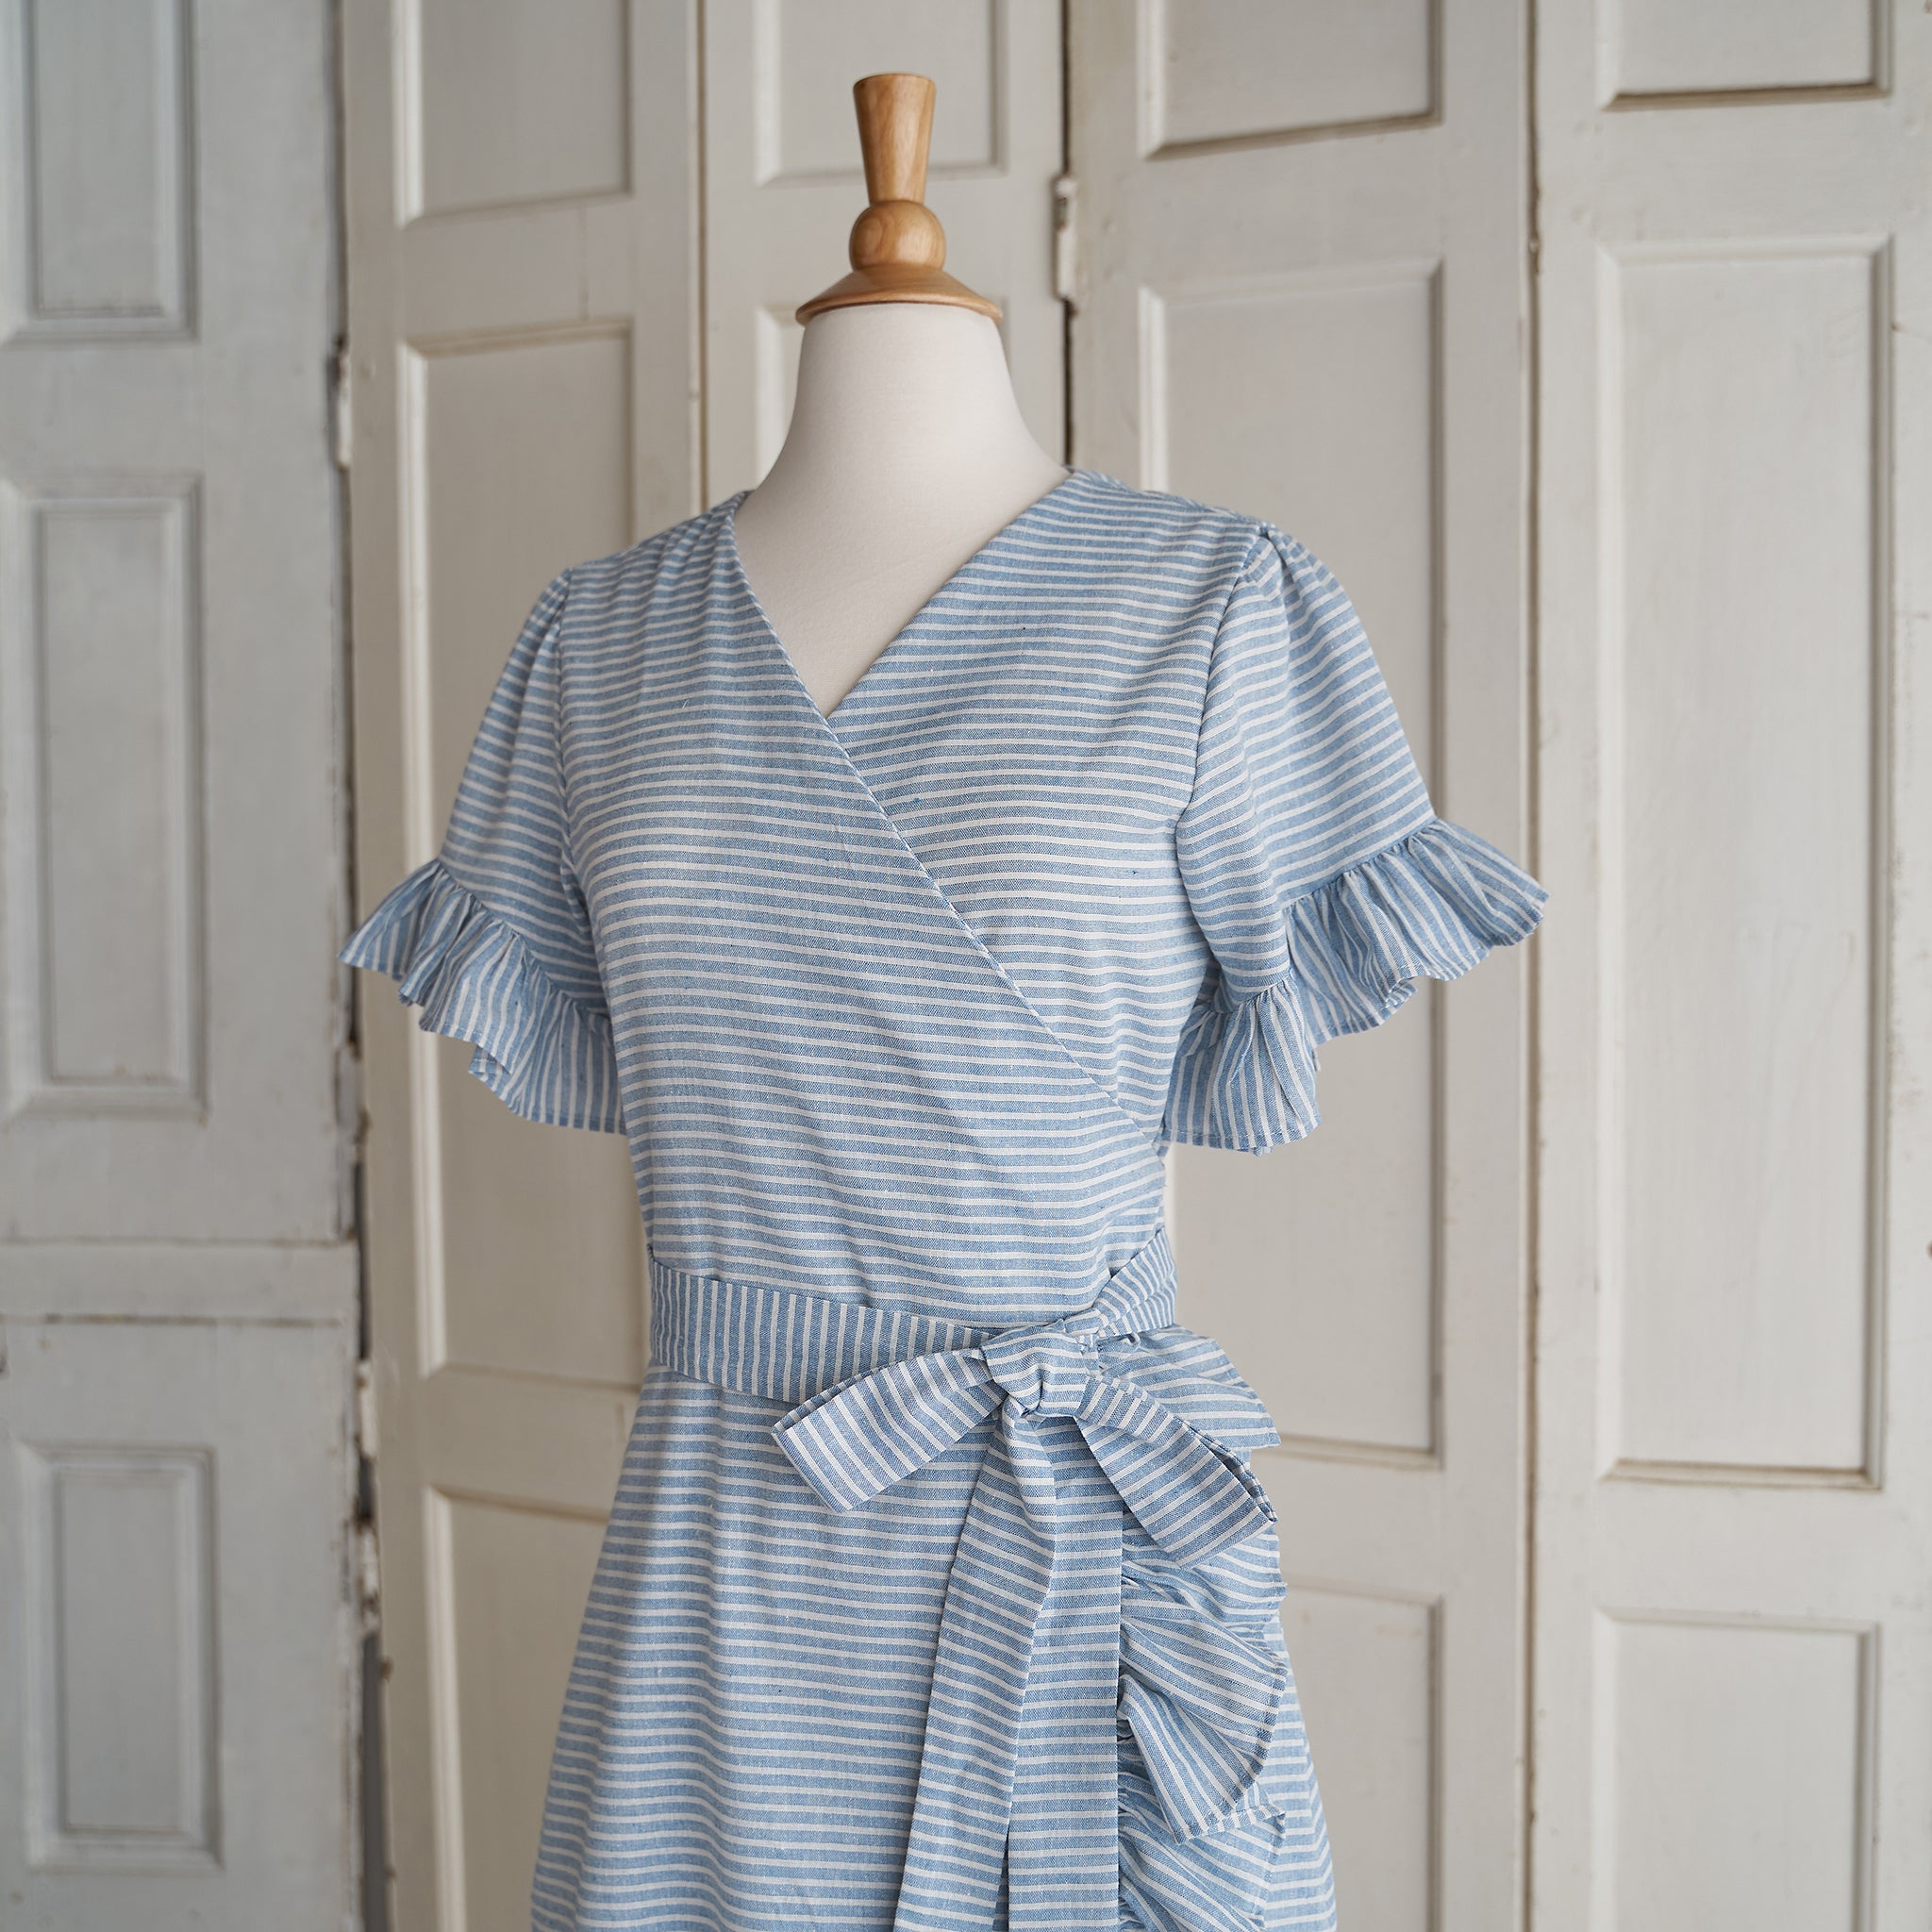 That's a Wrap! Dress (Women) - Striped (Size XS & S Only)